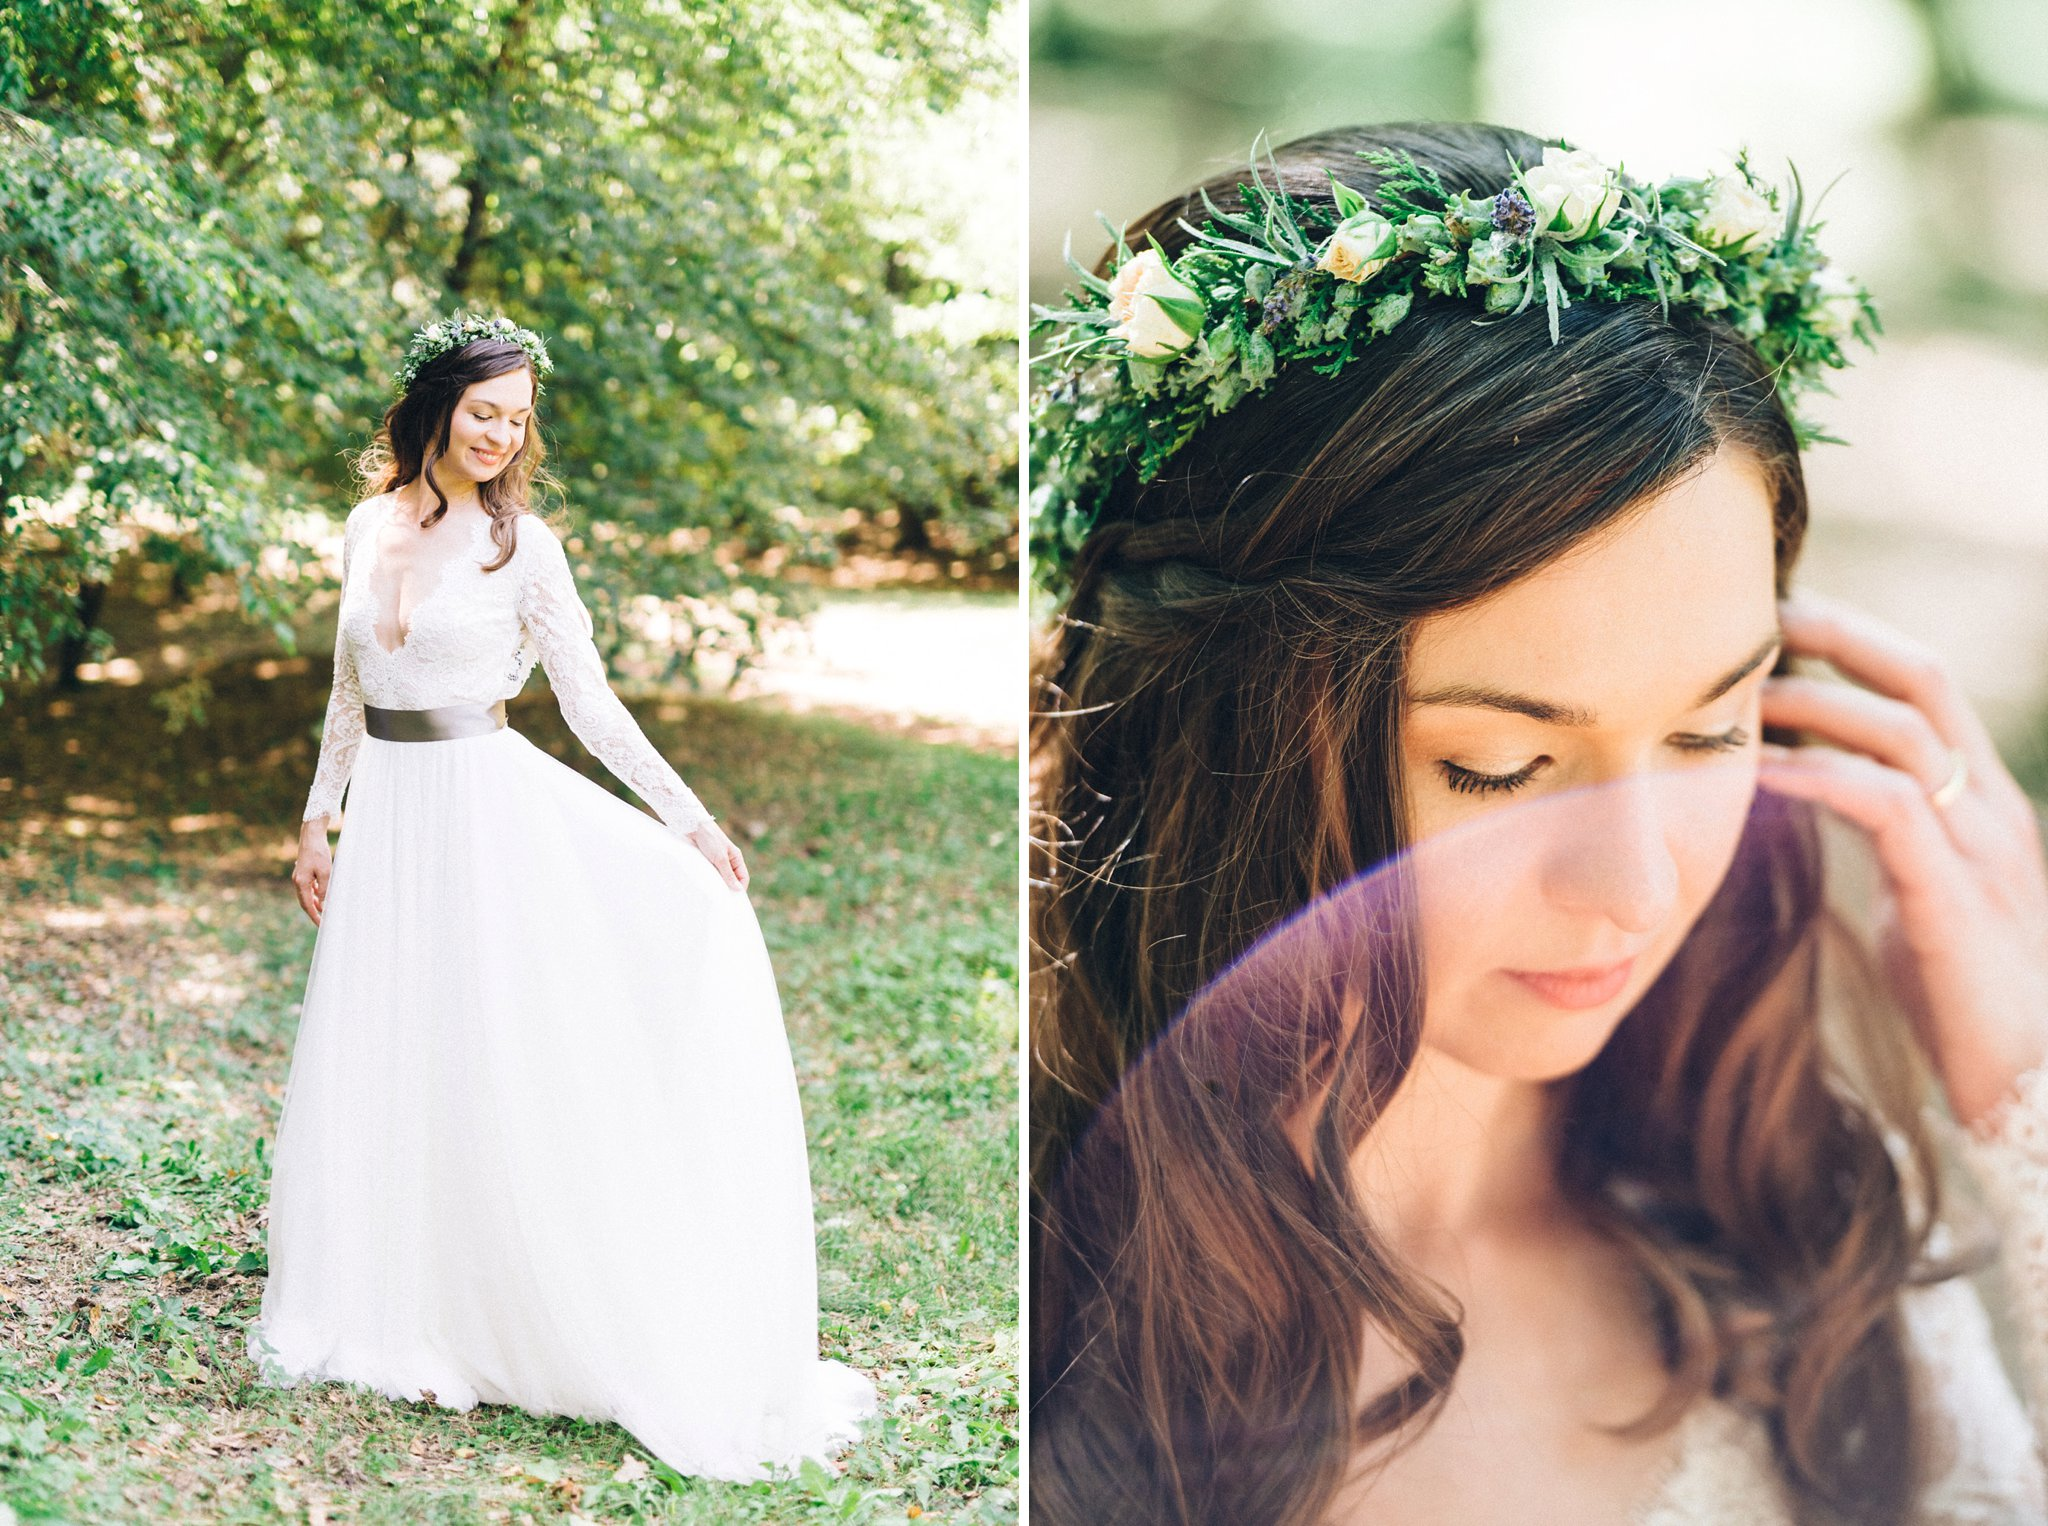 21-flower-crown-wedding-love